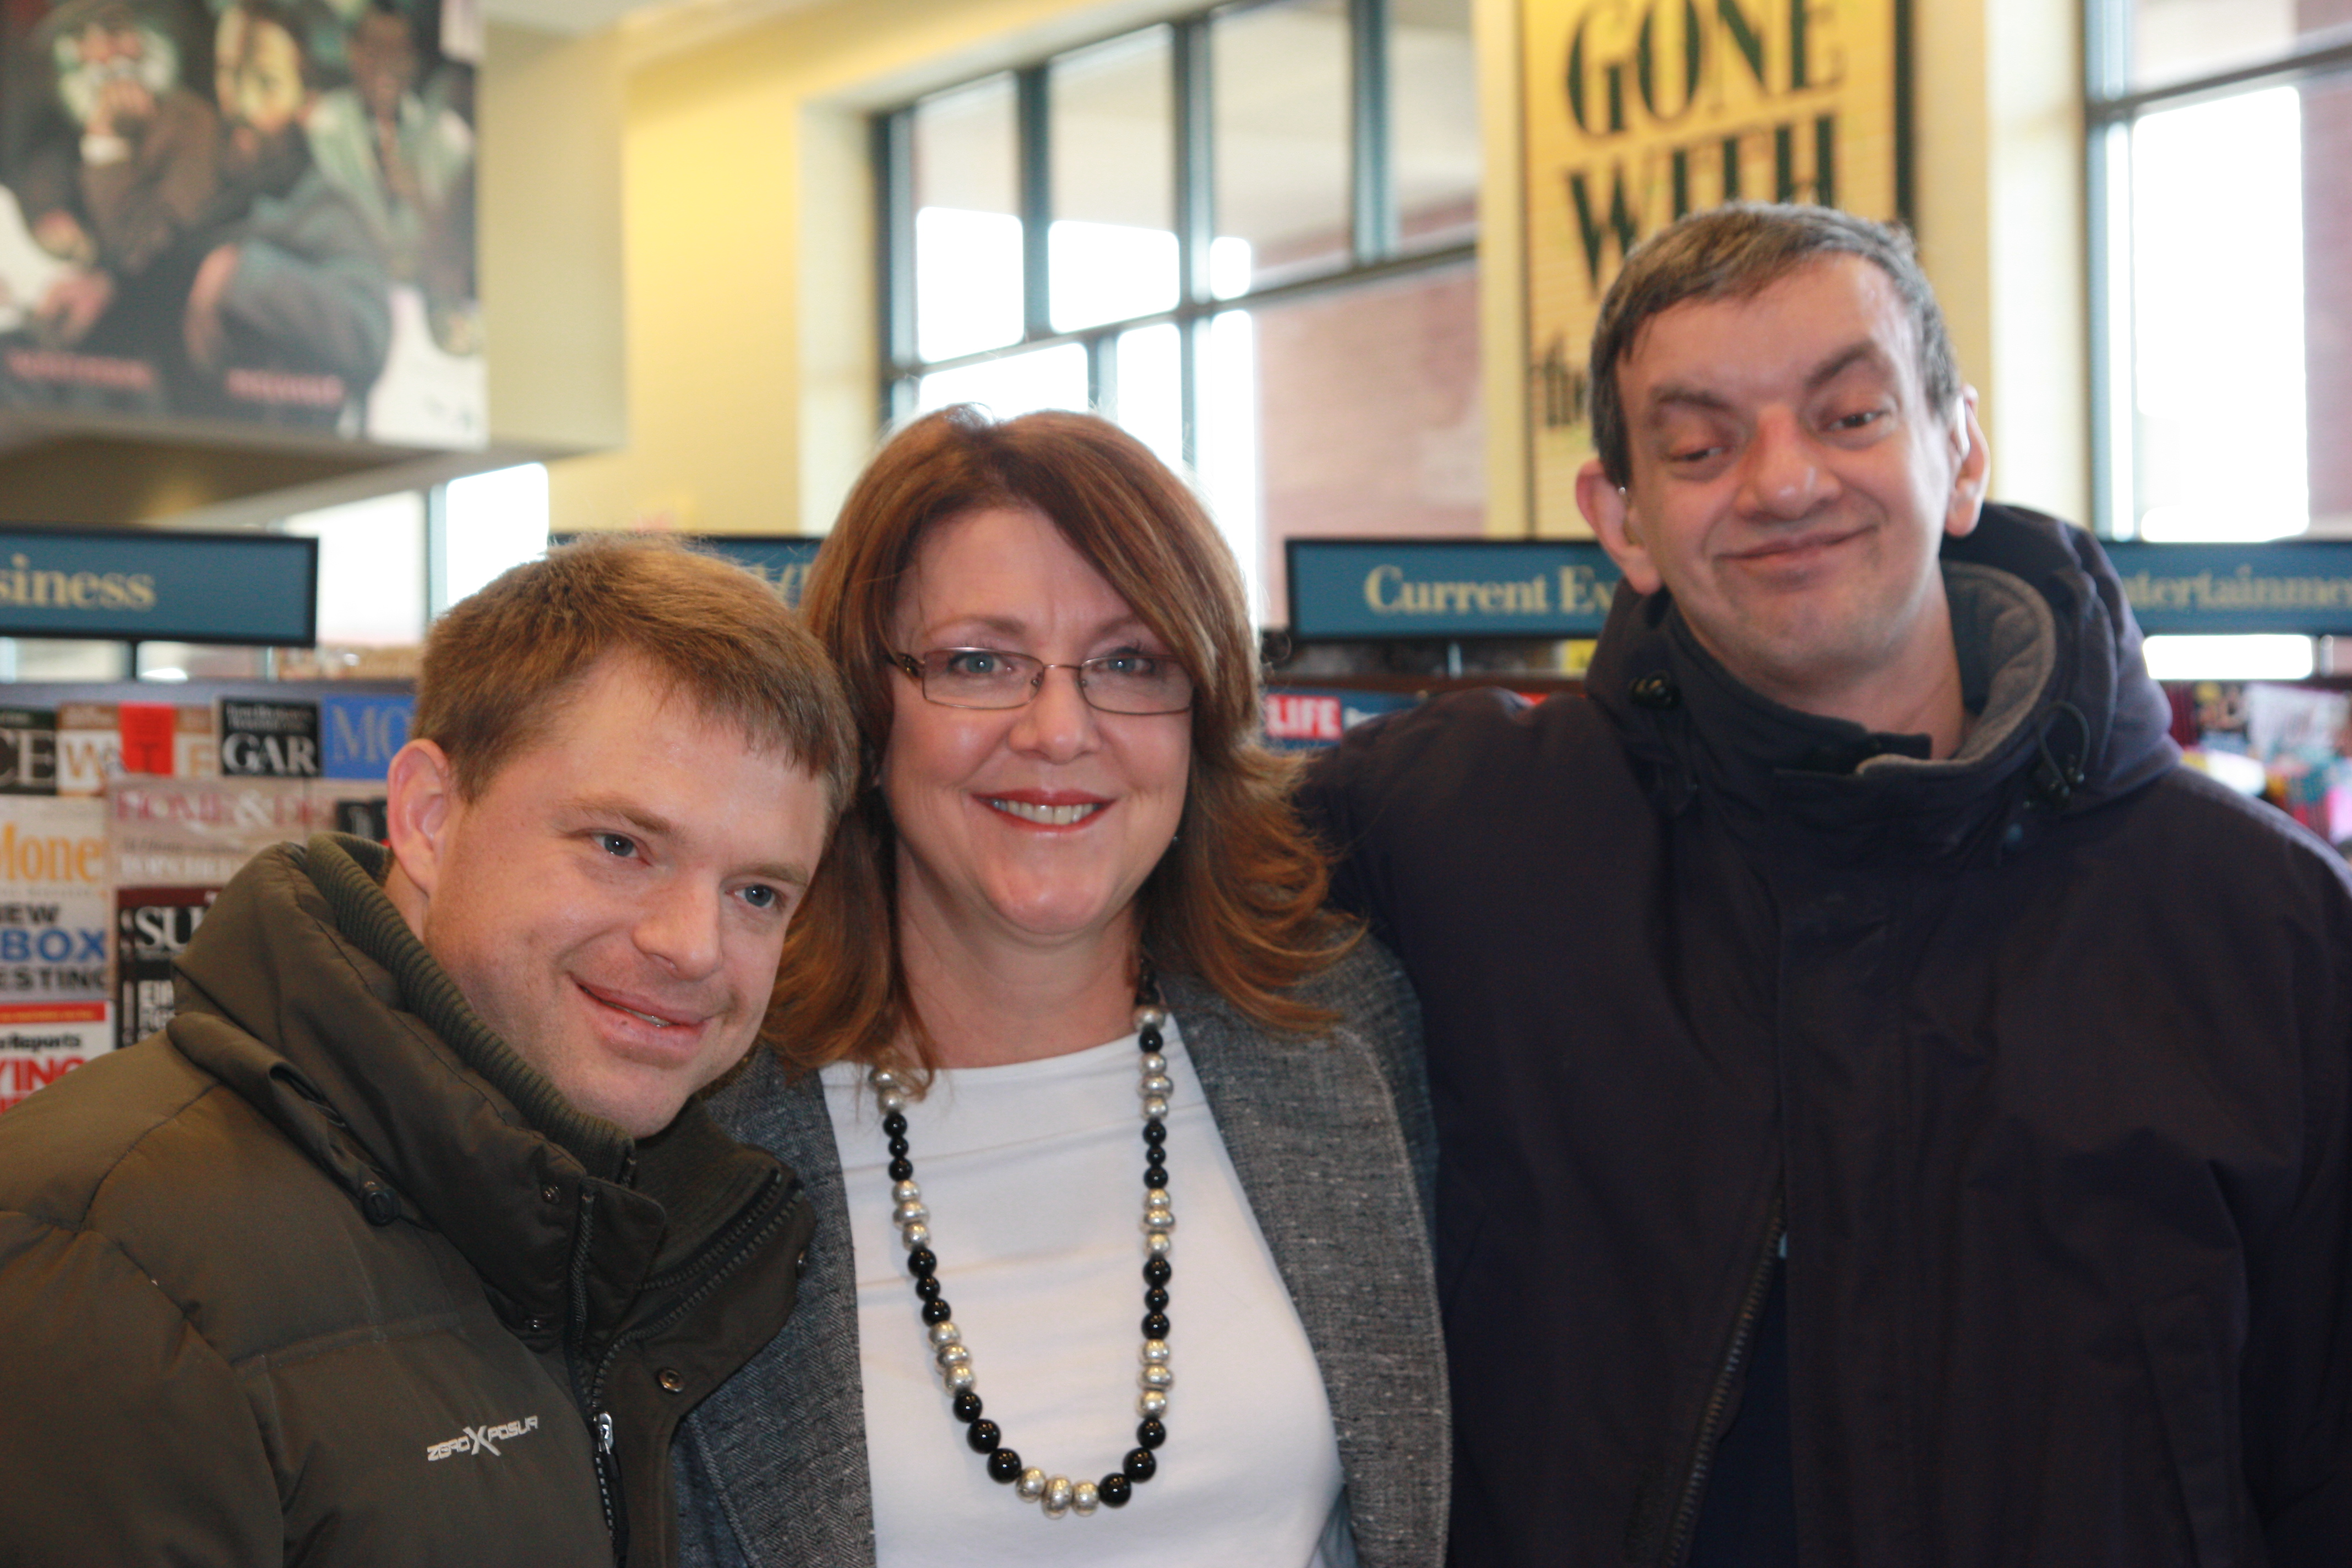 Susan Crandall's Best Buddies Indiana Charity Book Signing